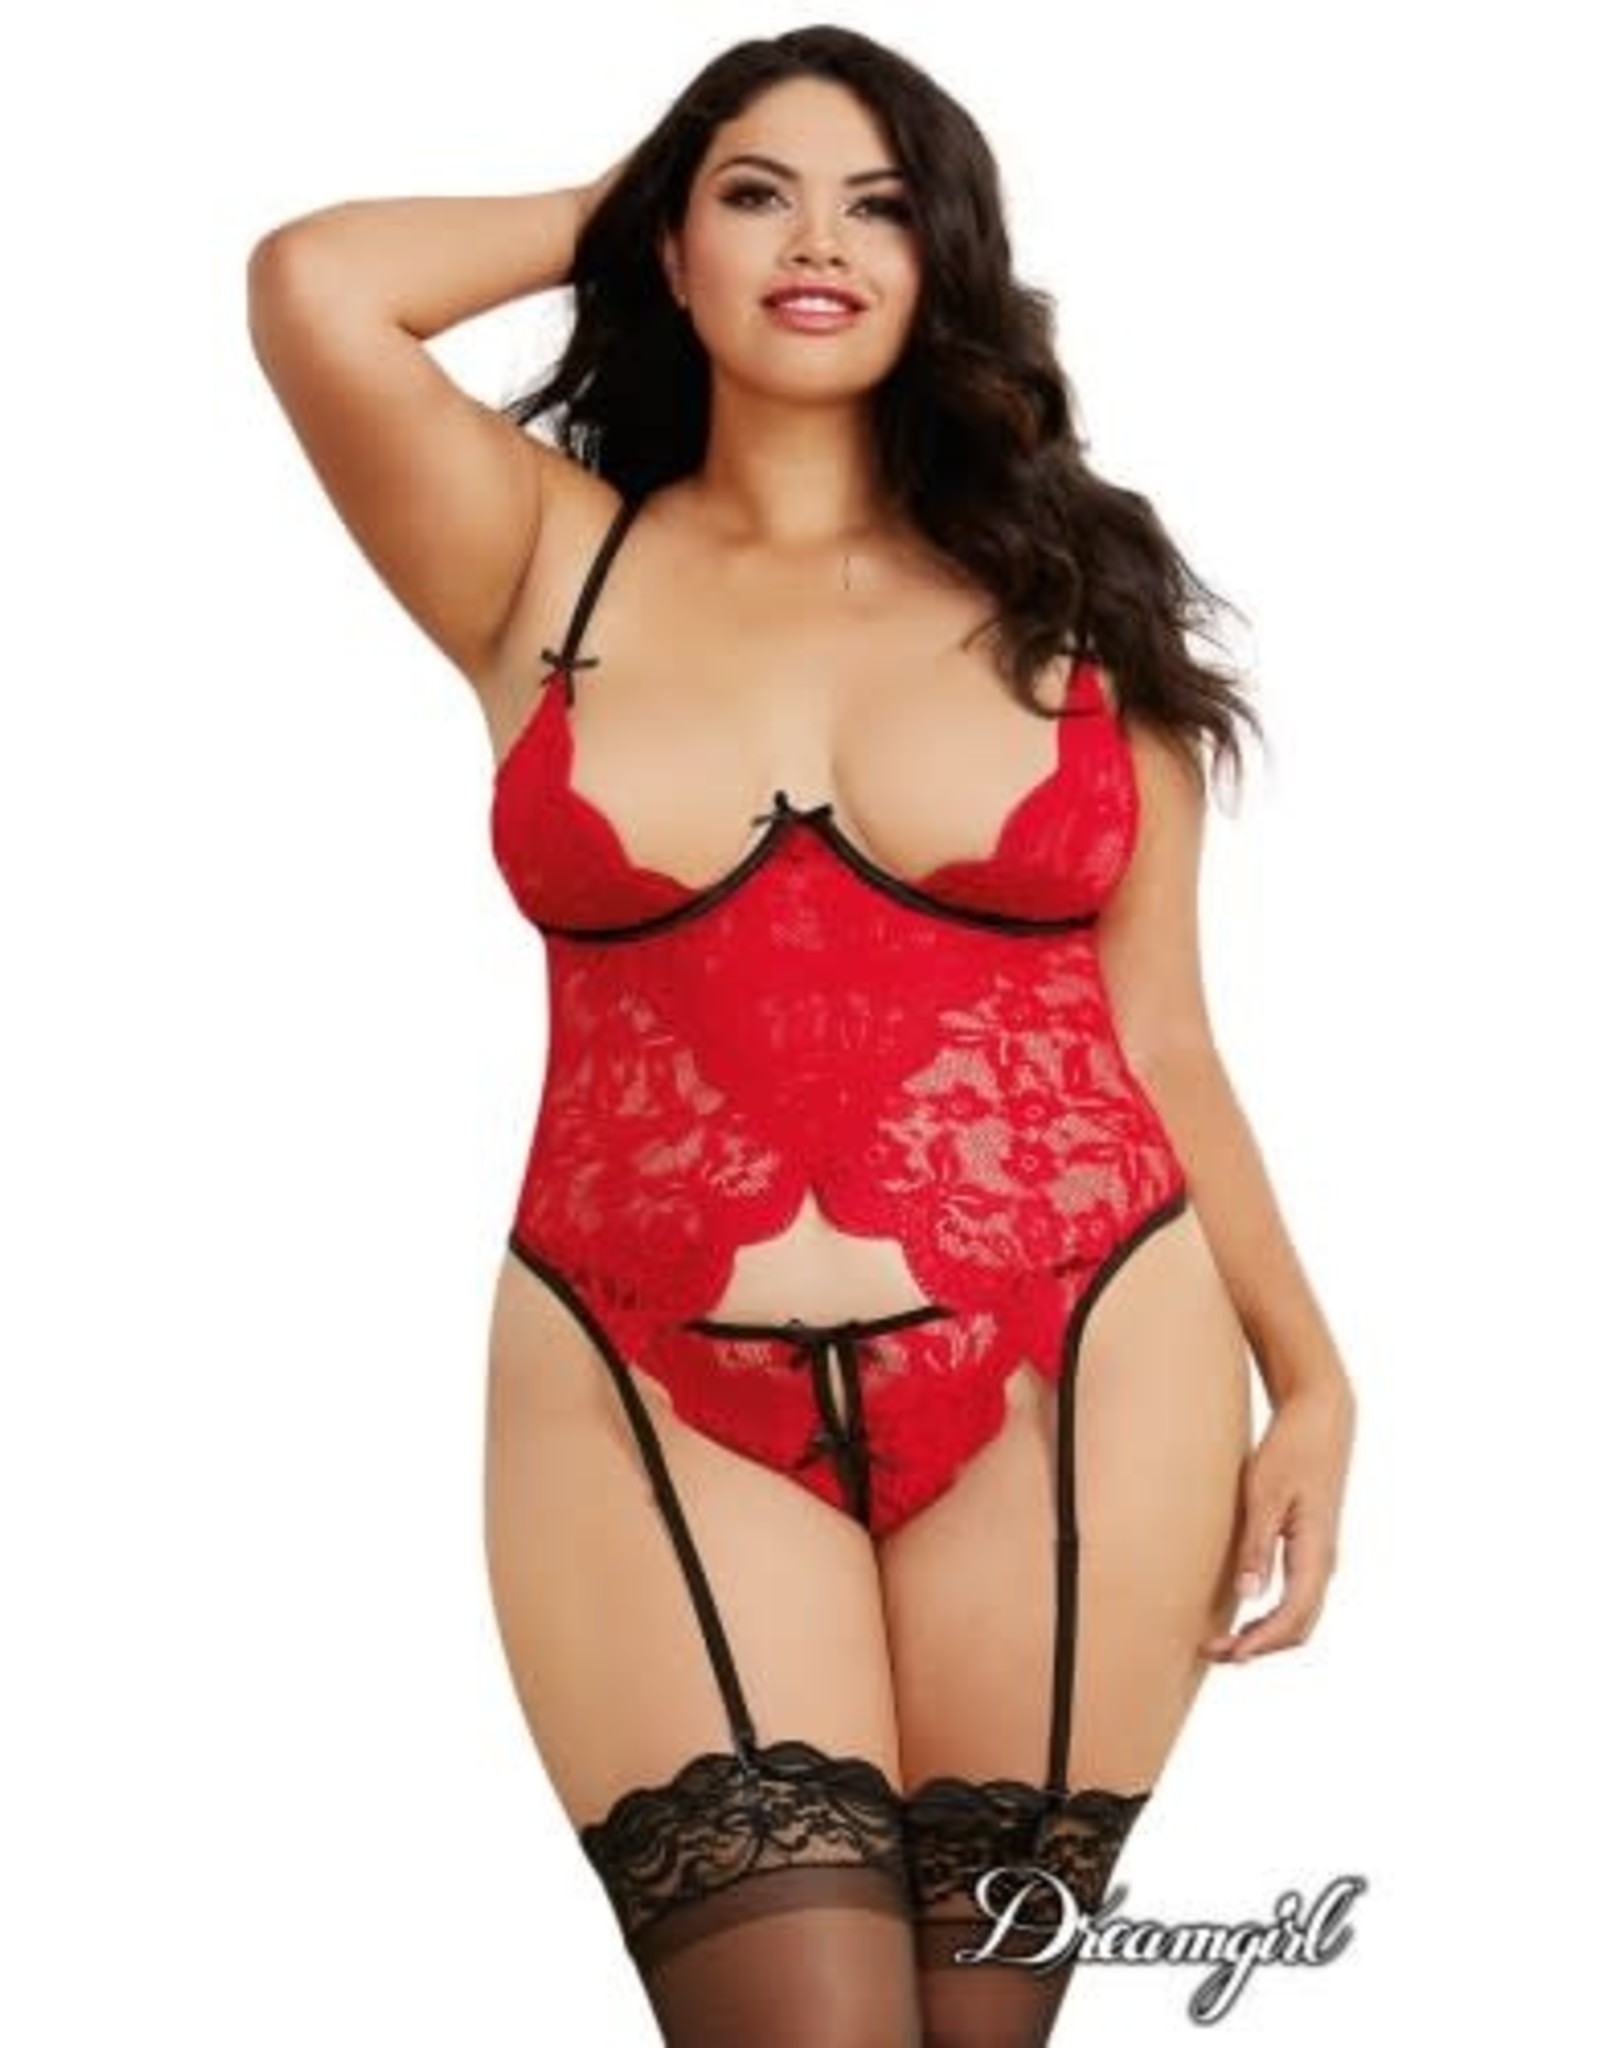 DREAMGIRL LINGERIE DREAMGIRL LIPSTICK RED BUSTIER QS